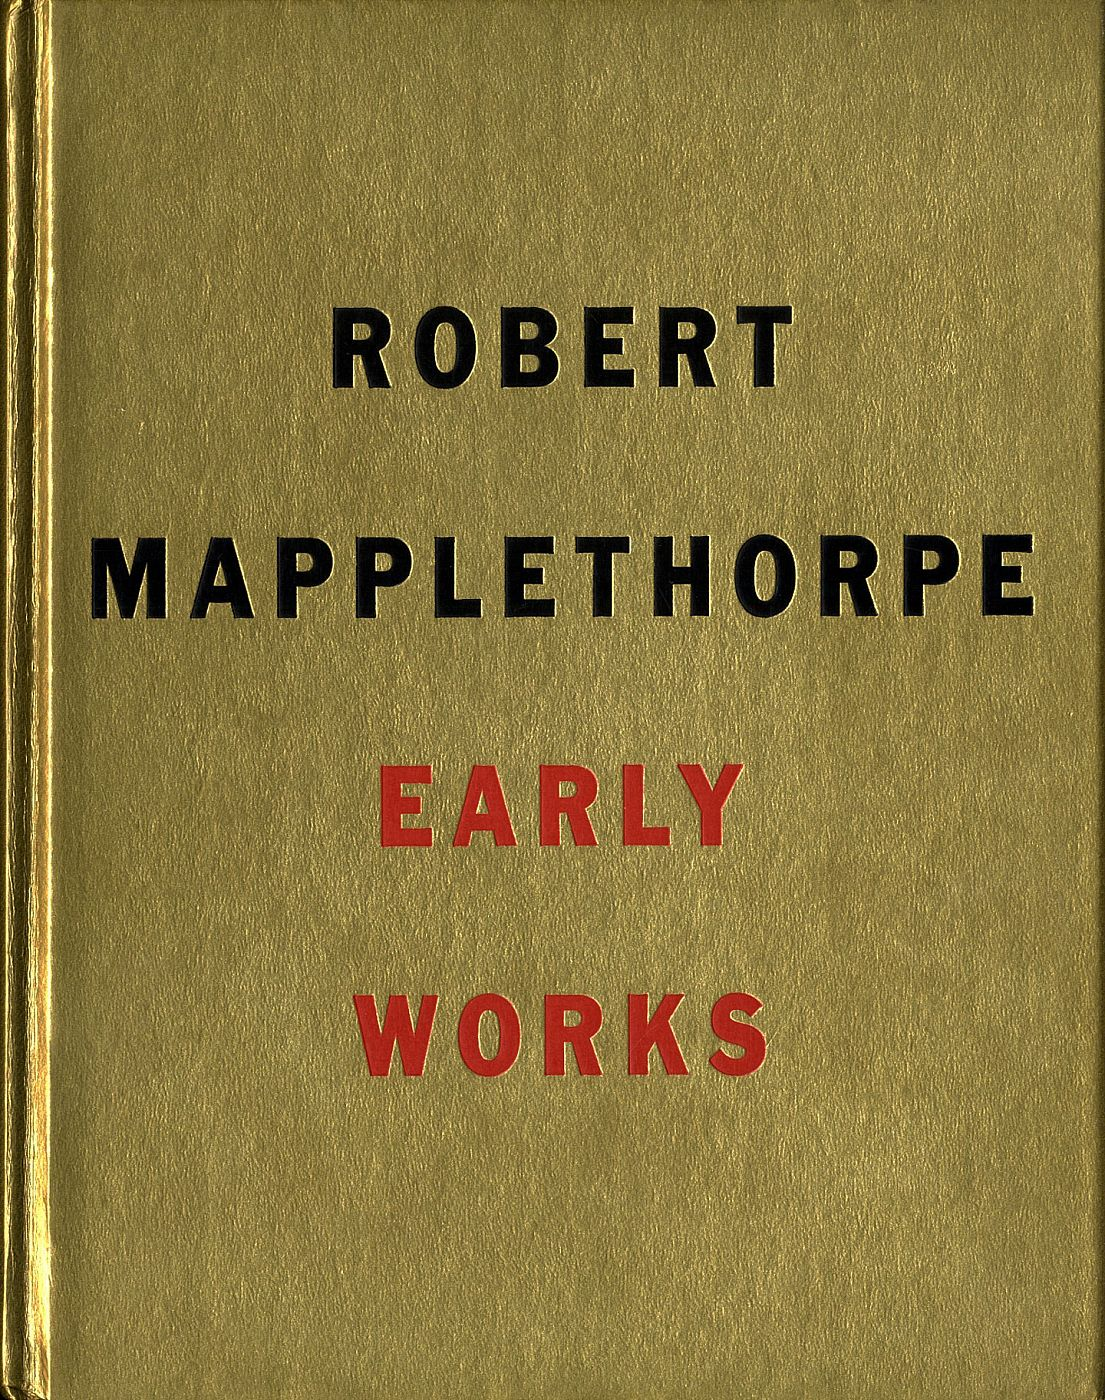 Robert Mapplethorpe: Early Works 1970-1974 (Robert Miller Gallery)